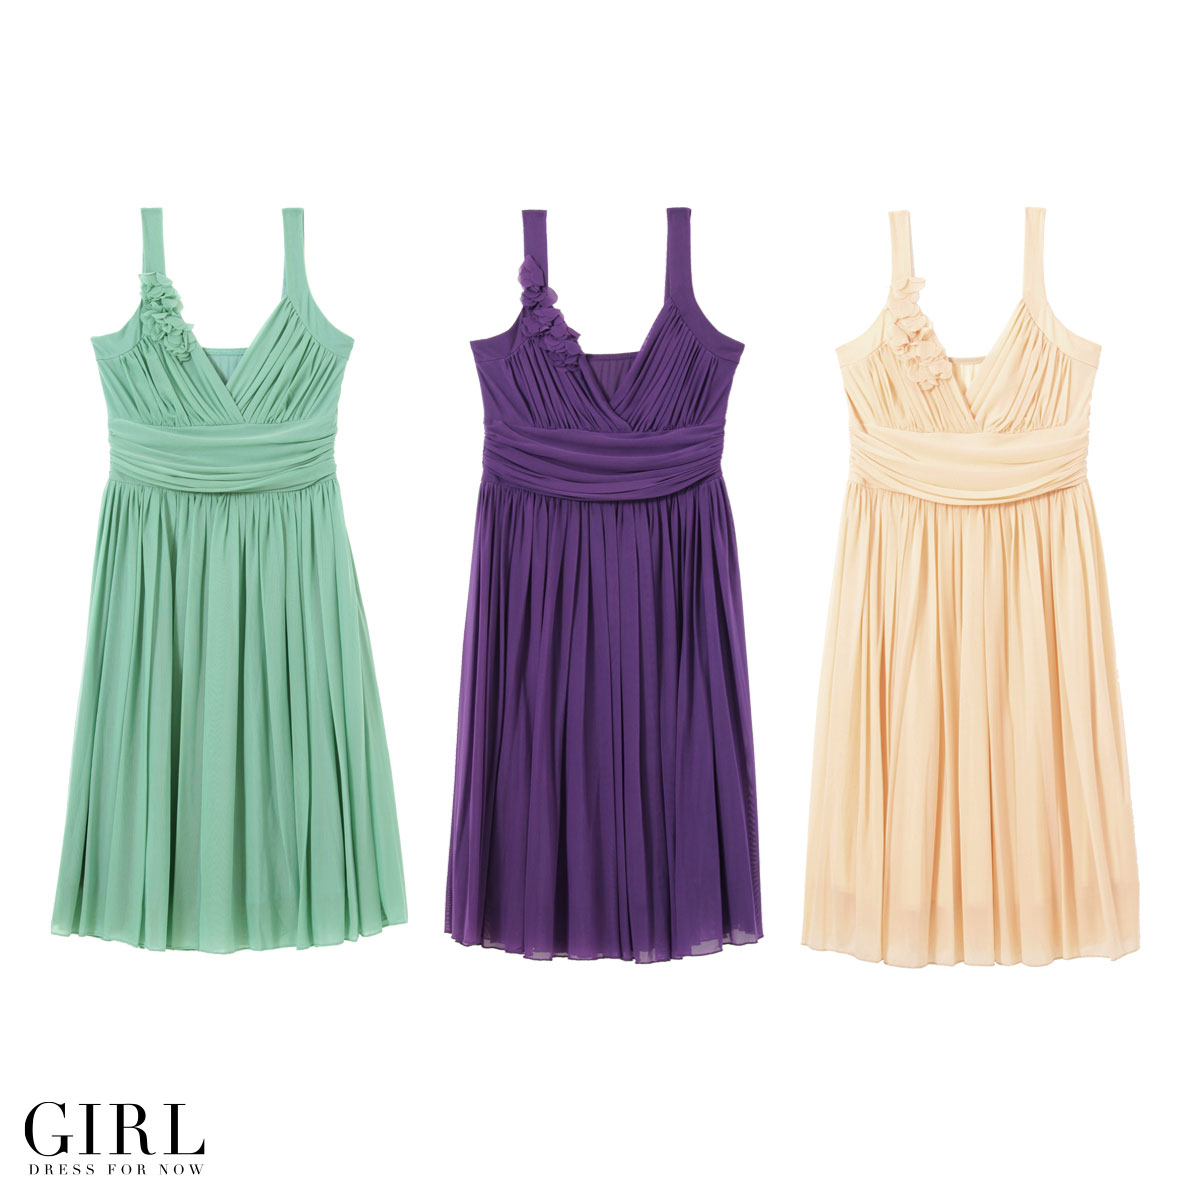 Party dress ☆ wedding dress invited kashkul, chest flower motif casually classy ☆ minivan API ☆ parties party party party dress 3 one piece one-piece one-piece - Su ladies dress sleeveless clothes dresses